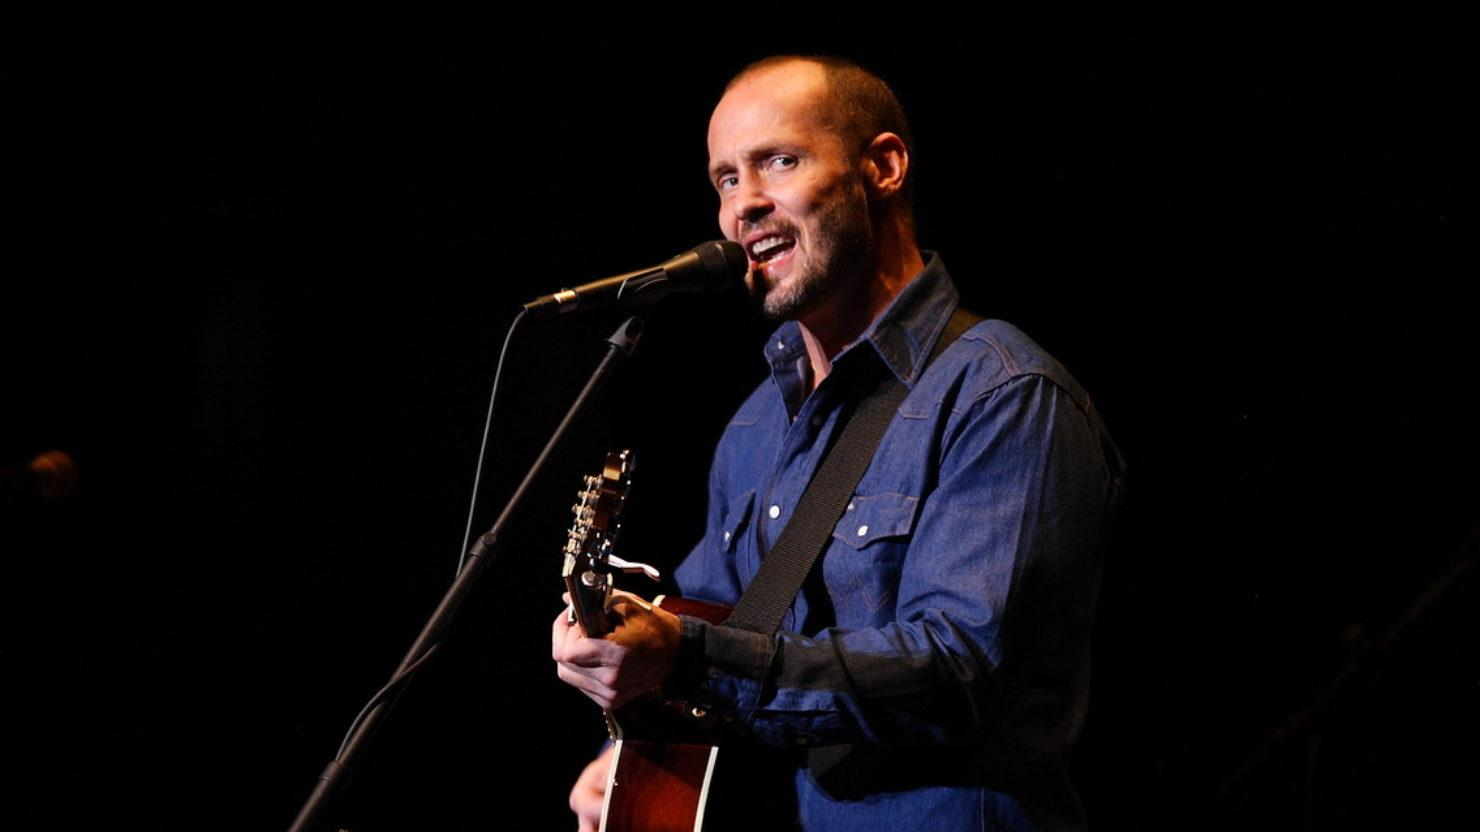 Paul Thorn Upcoming Shows Tickets Reviews More